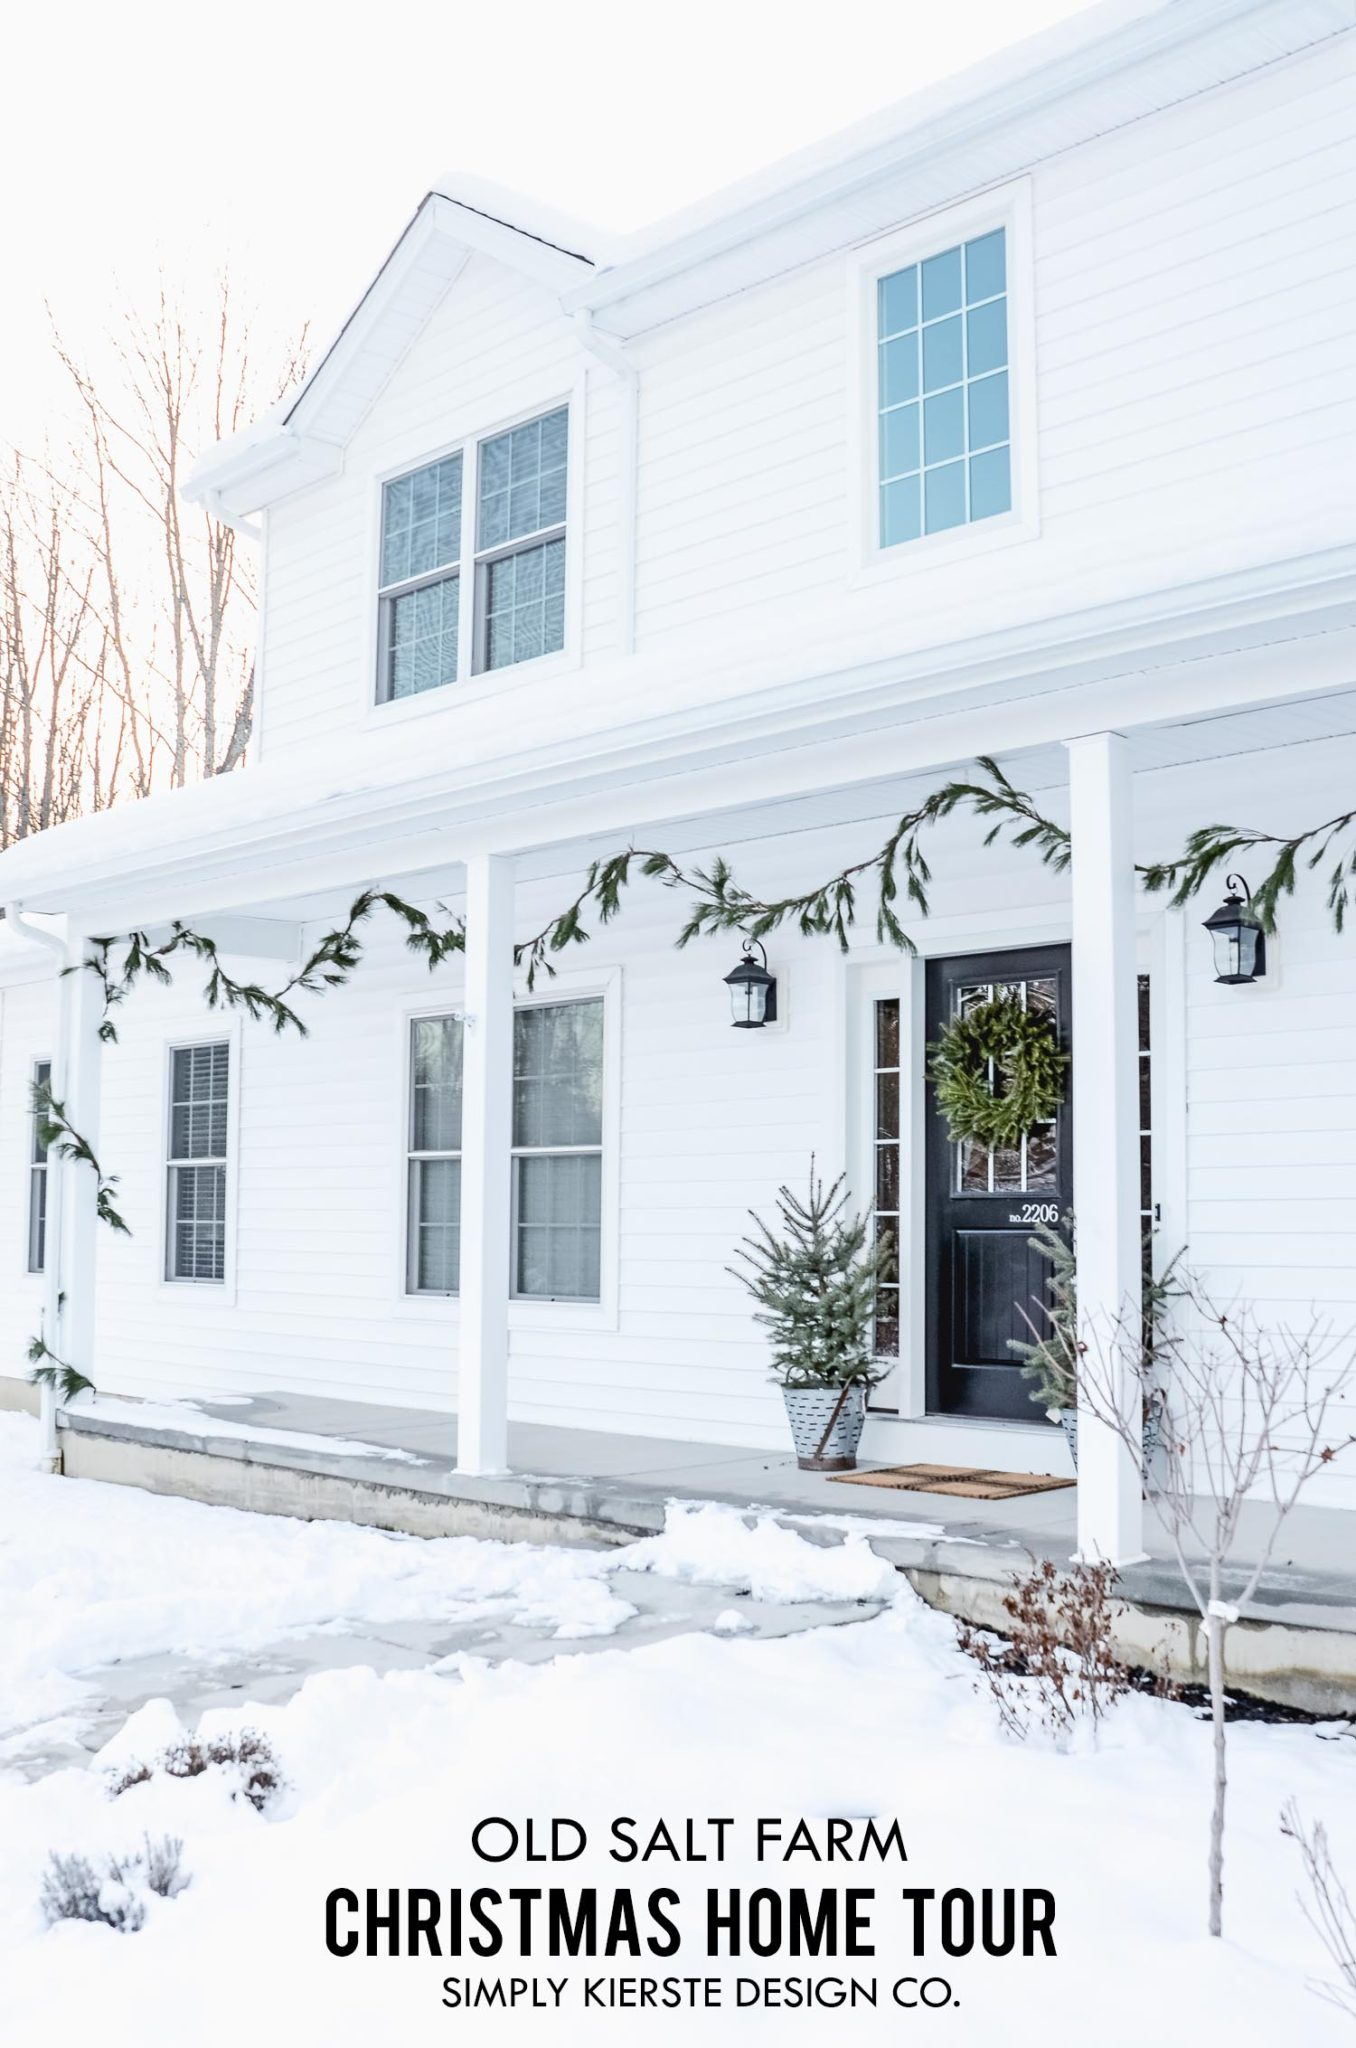 Christmas Home Tour Old Salt Farm | oldsaltfarm.com #hometour #christmashometour #christmasdecor #farmhousechristmas